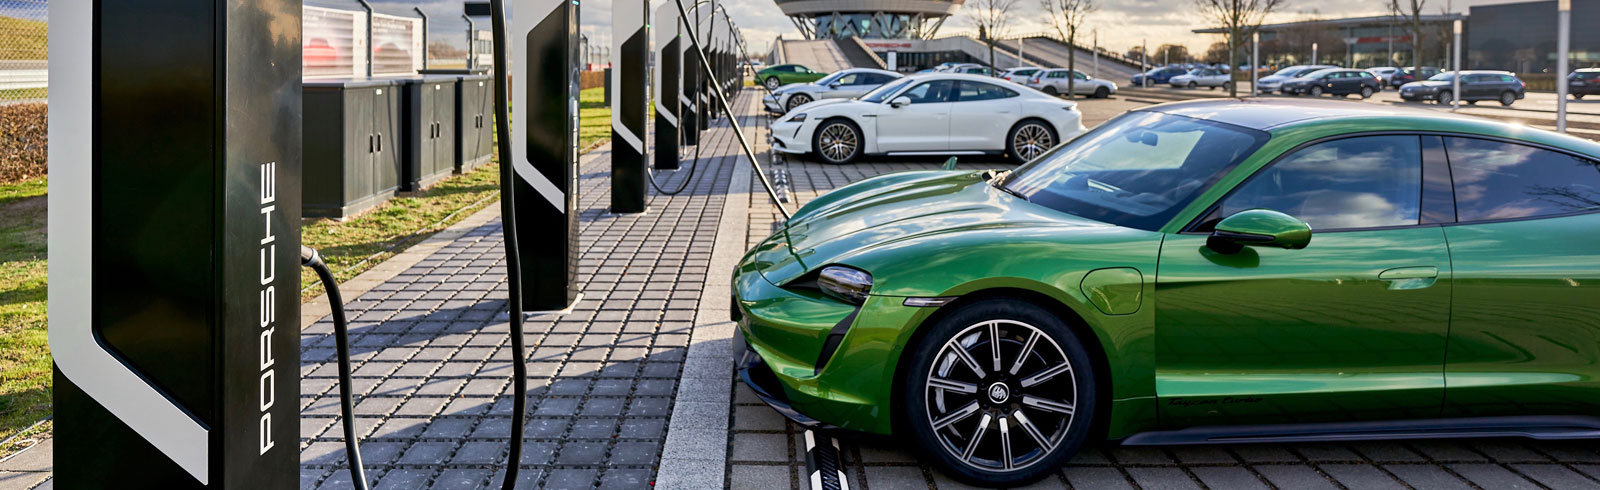 Porsche Turbo Charing is Europe's most powerful rapid-charging park